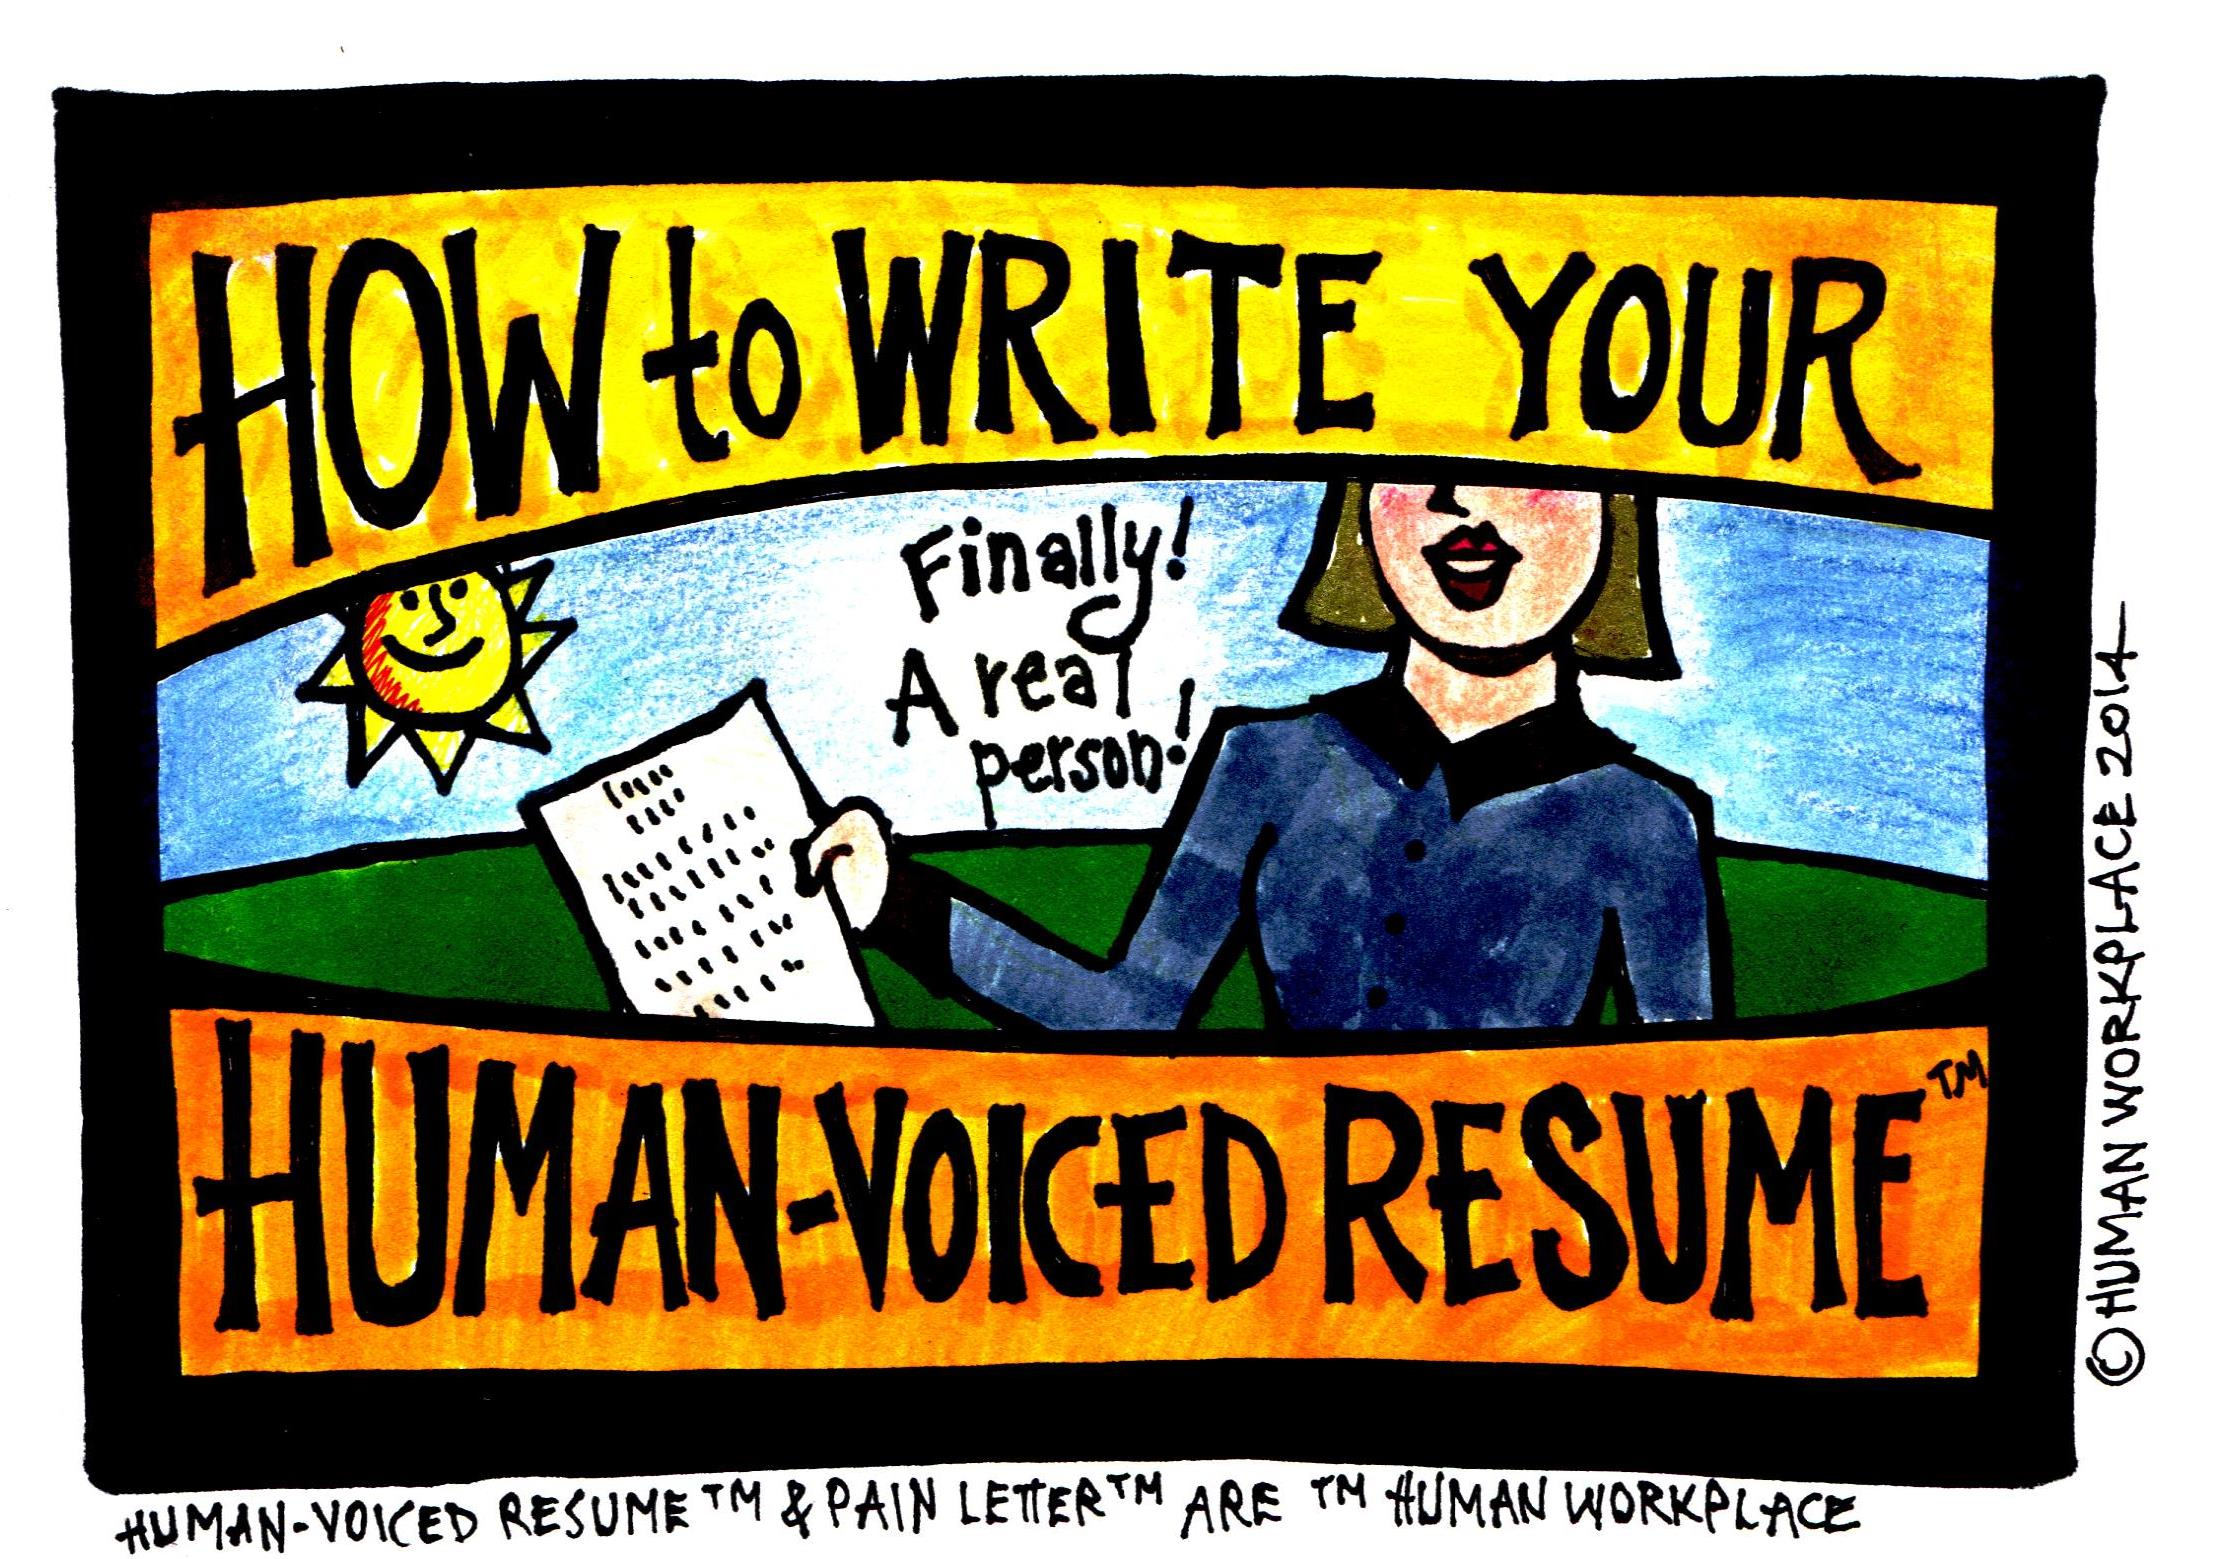 to write your human voiced resume forbes example brighter color good action verbs for Resume Human Voiced Resume Example